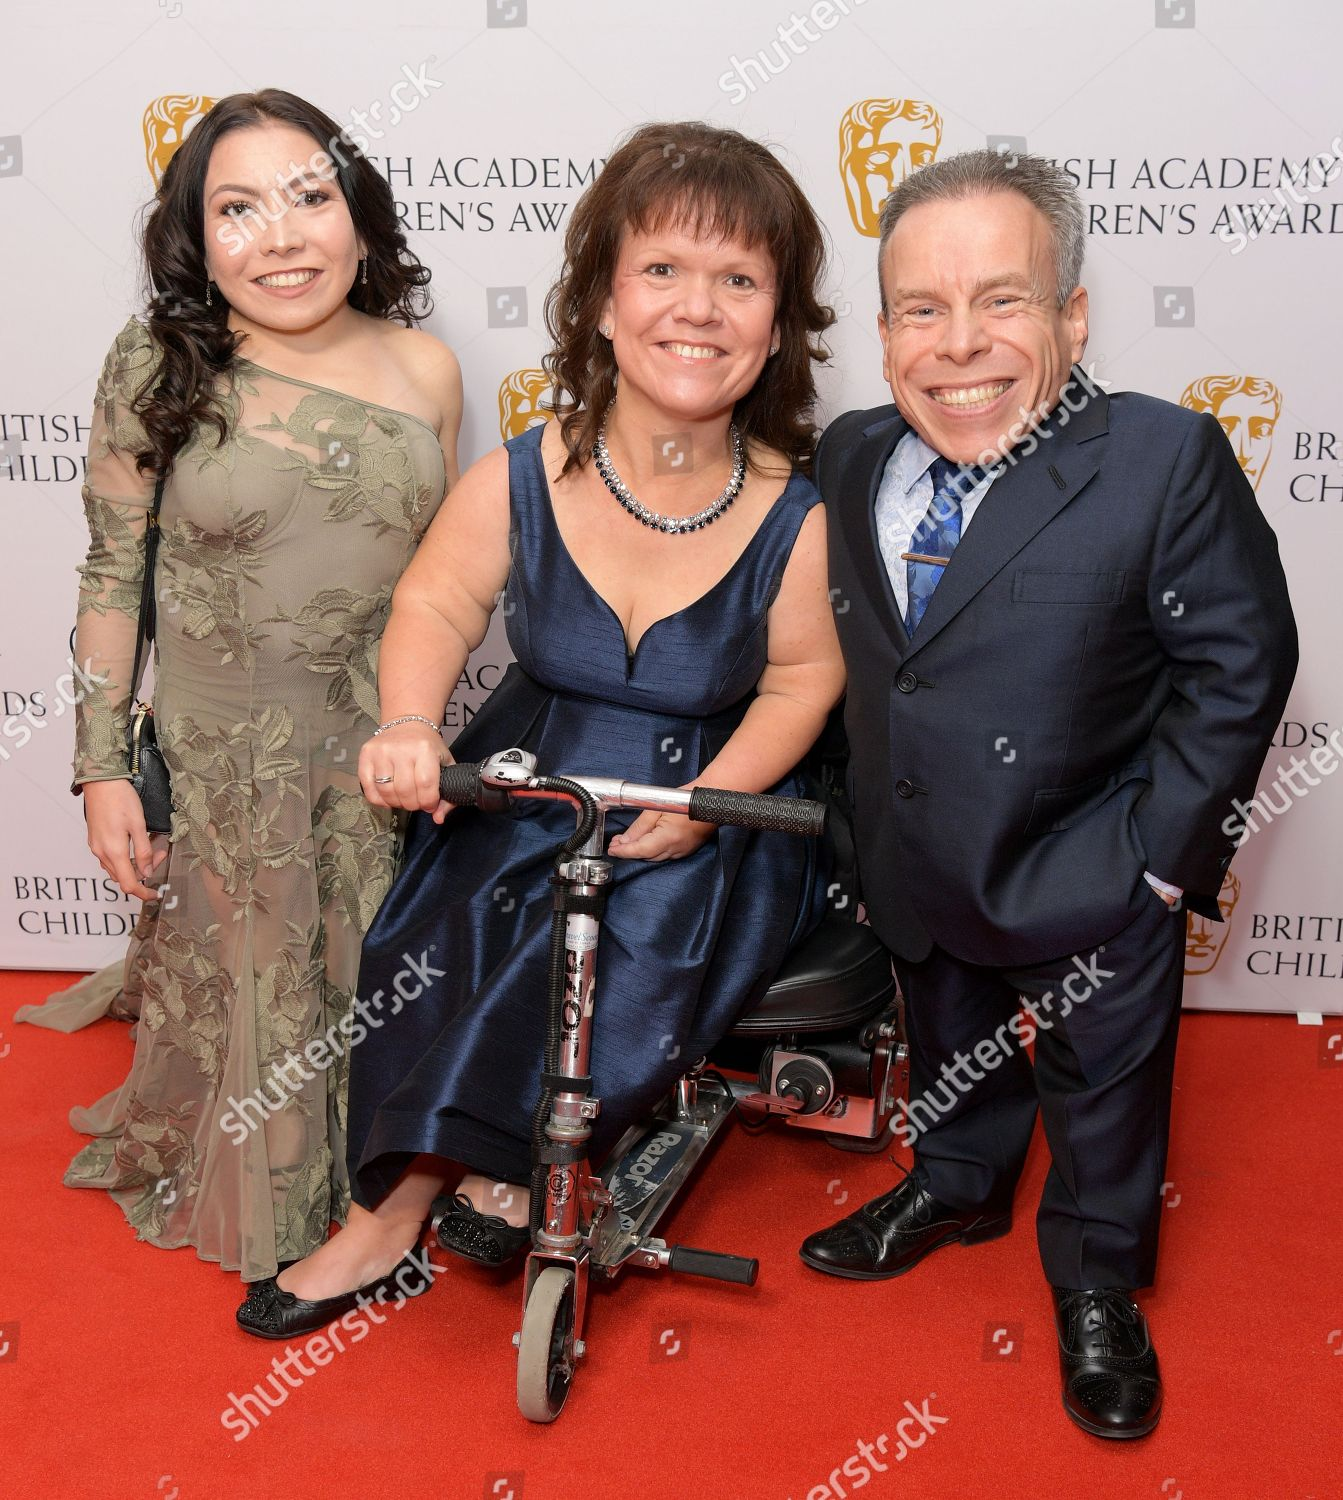 Annabelle Davis Samantha Davis Warwick Davis Foto Editorial En Stock Imagen En Stock Shutterstock Join facebook to connect with samantha davis and others you may know. https www shutterstock com es editorial image editorial british academy childrens awards arrivals roundhouse london uk 25 nov 2018 9990911ao